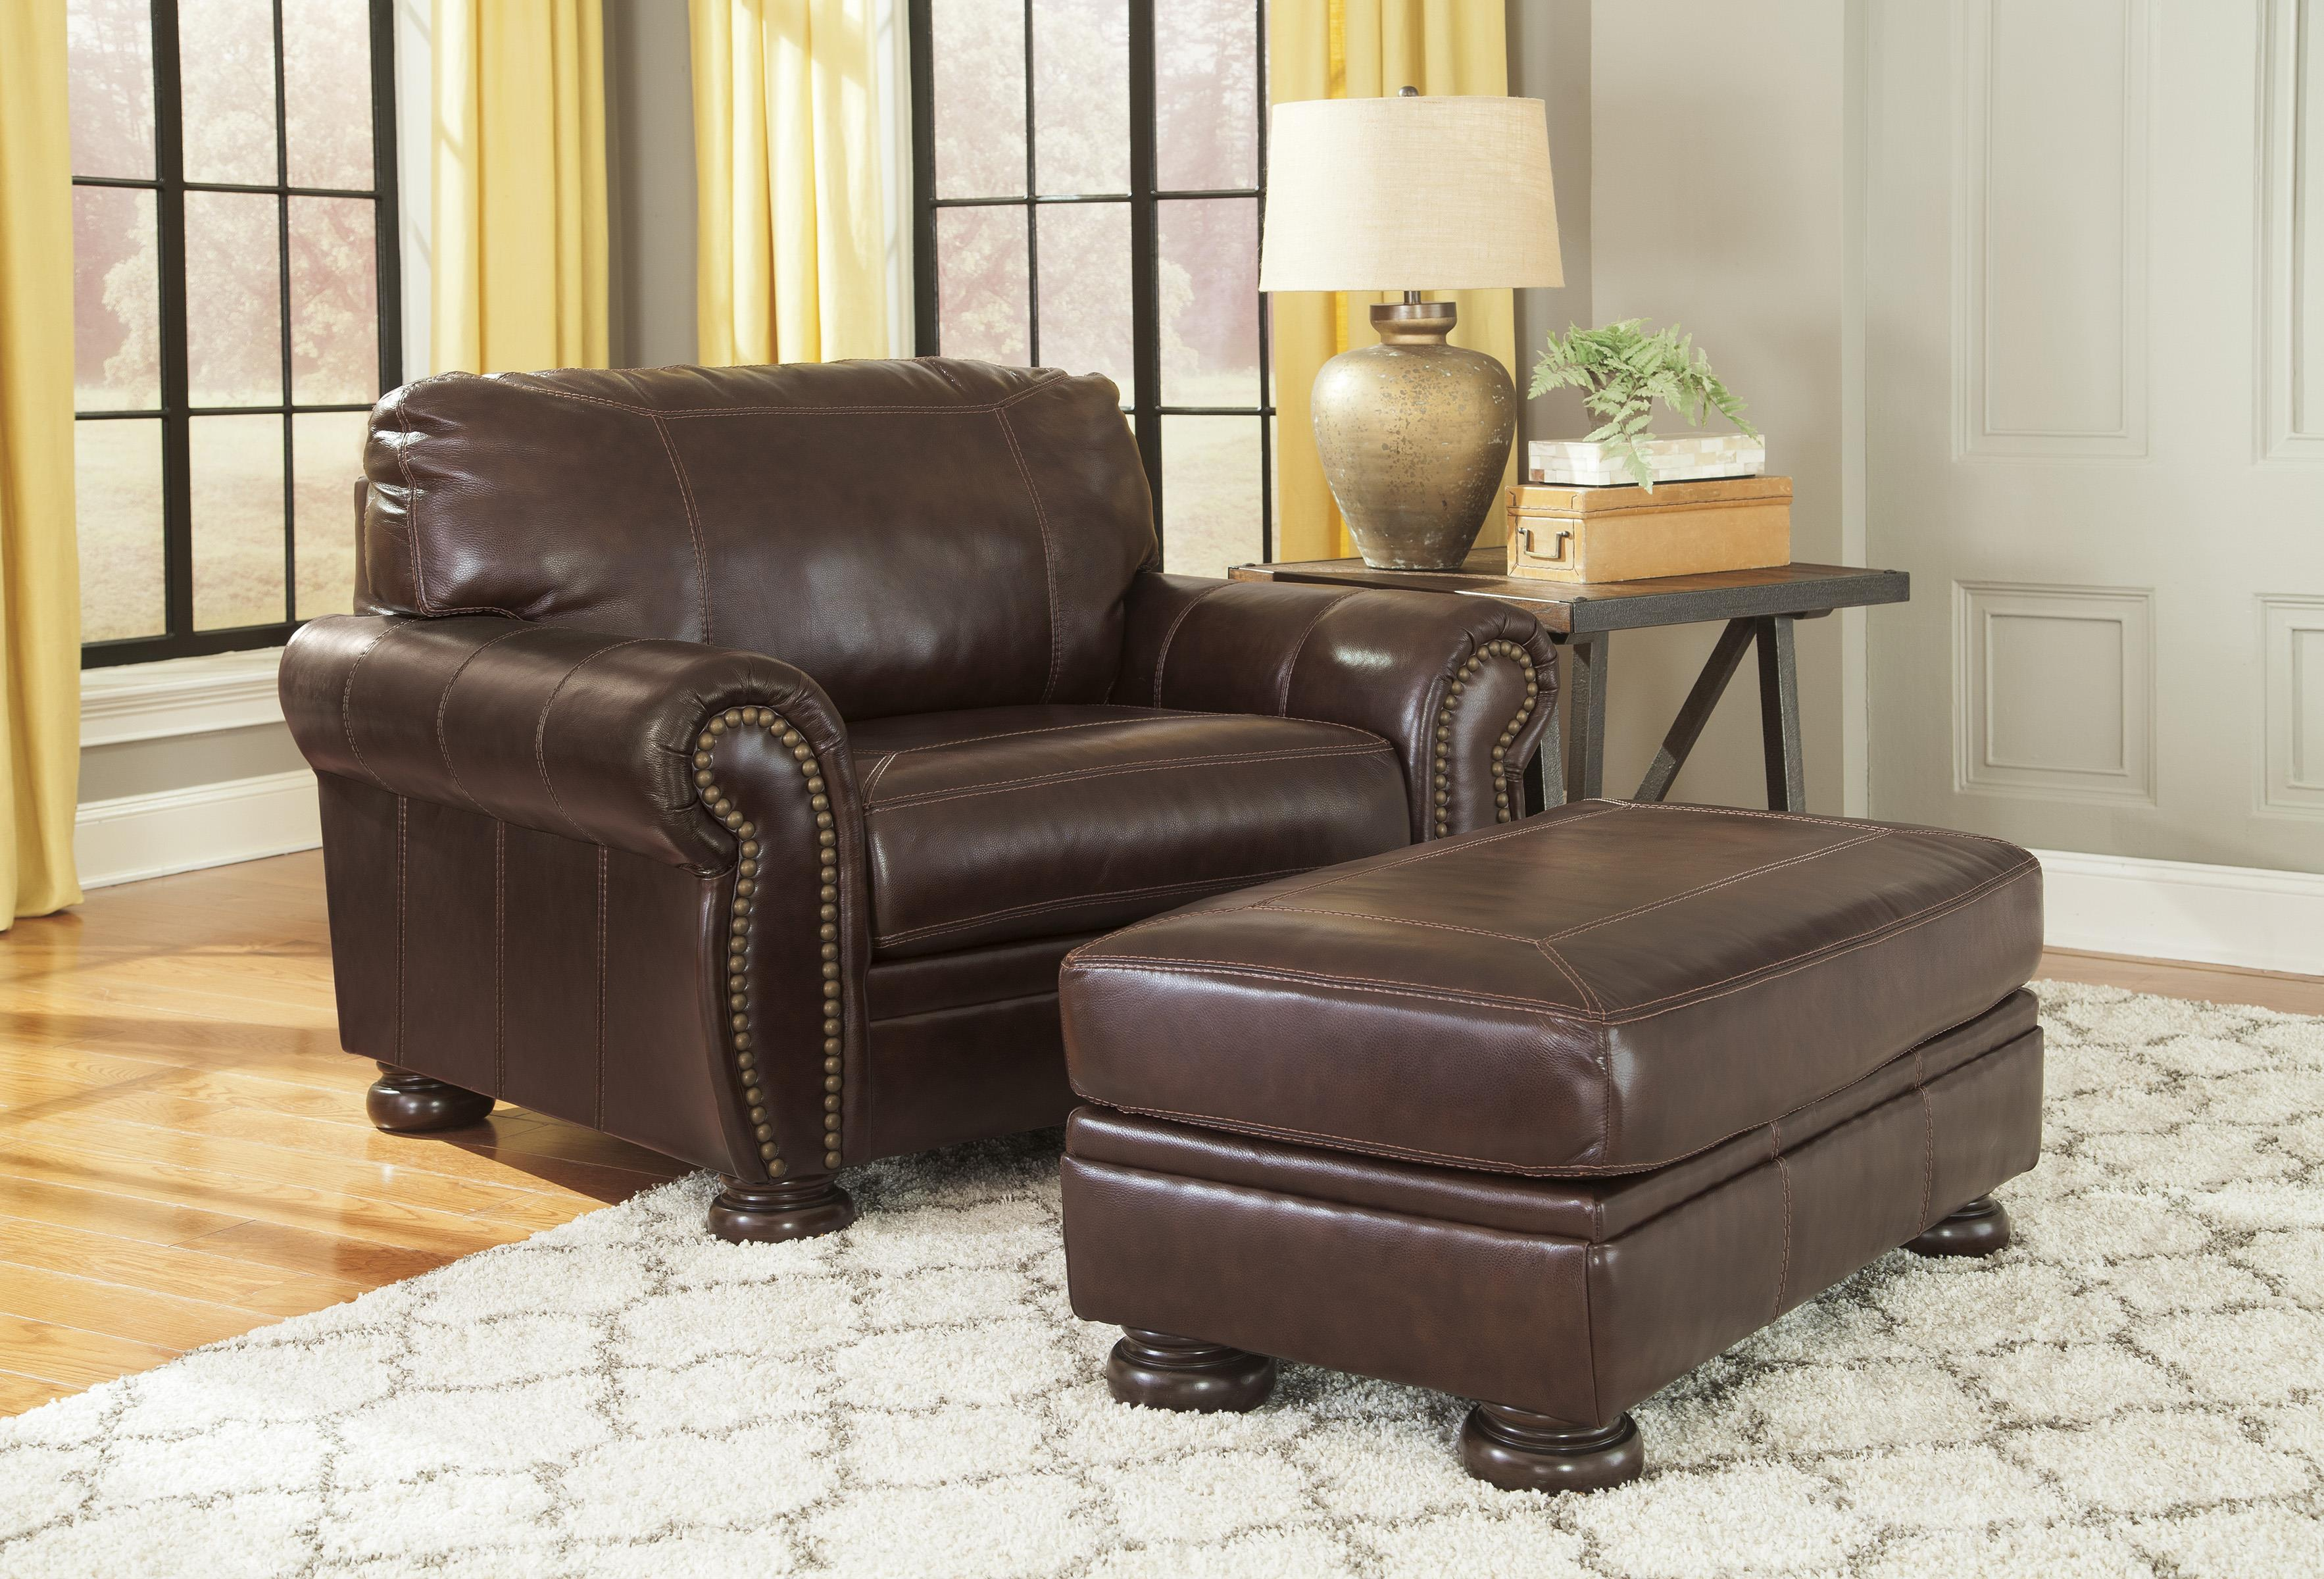 Leather chair and a half - Traditional Leather Match Chair And A Half With Rolled Arms Nailhead Trim Bun Feet